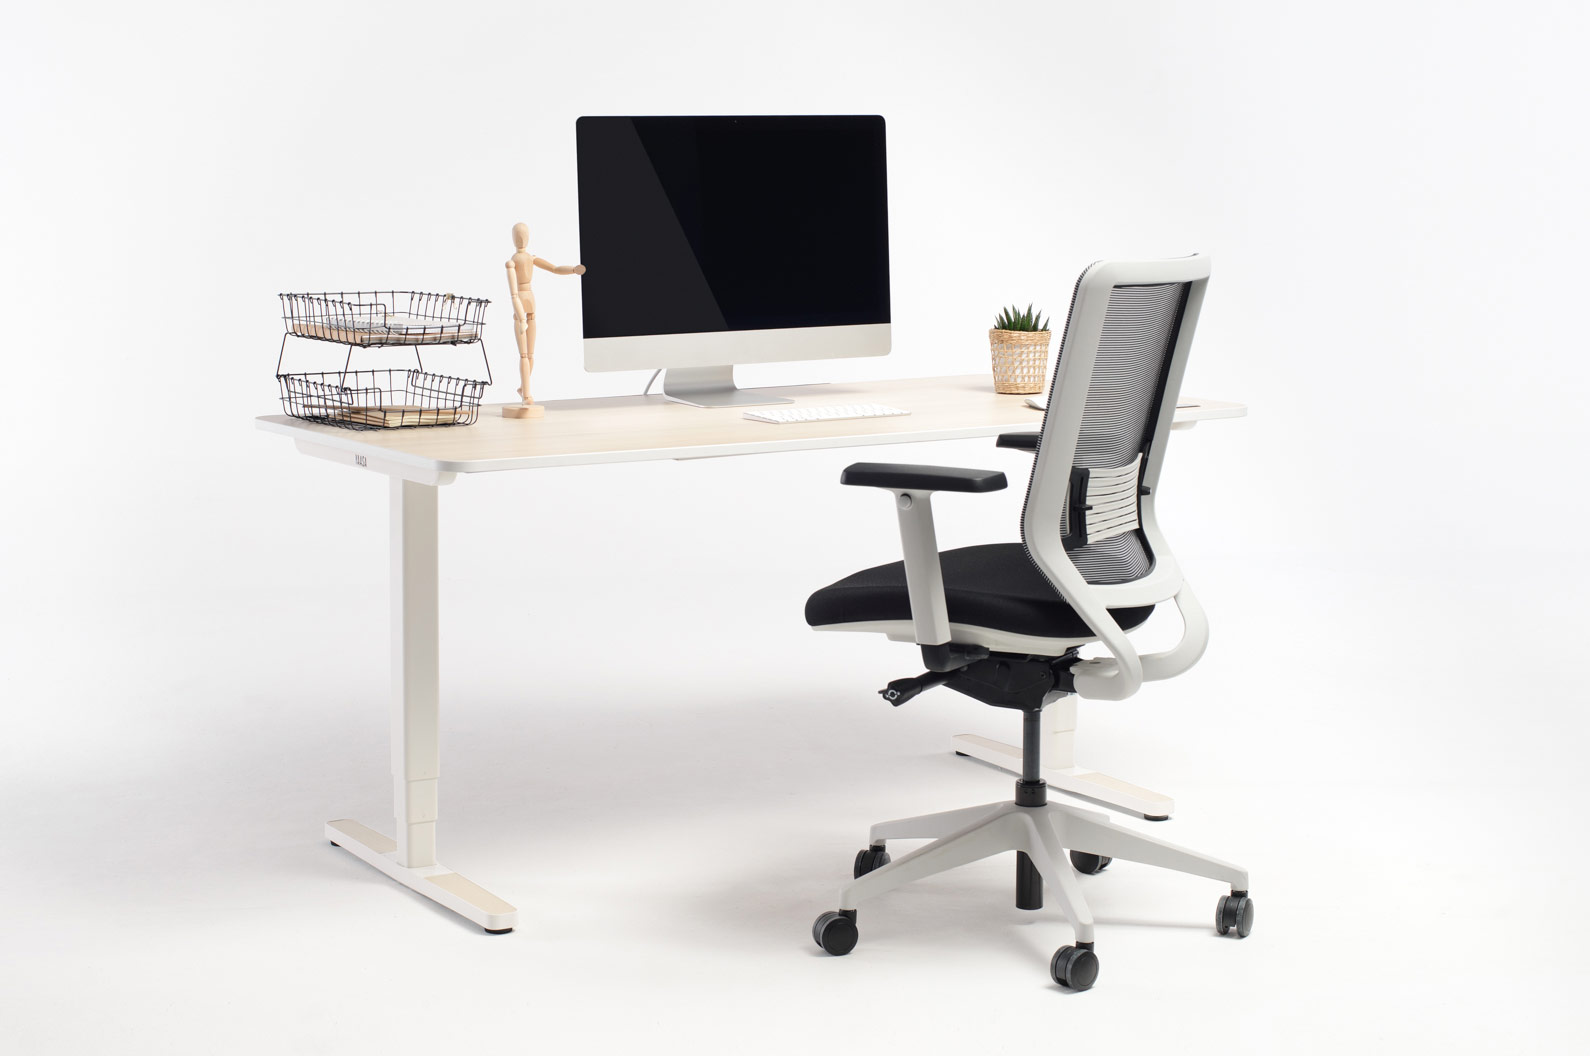 An office furnished with products by Yaasa is ergonomical and provides adjustability and movement while working.